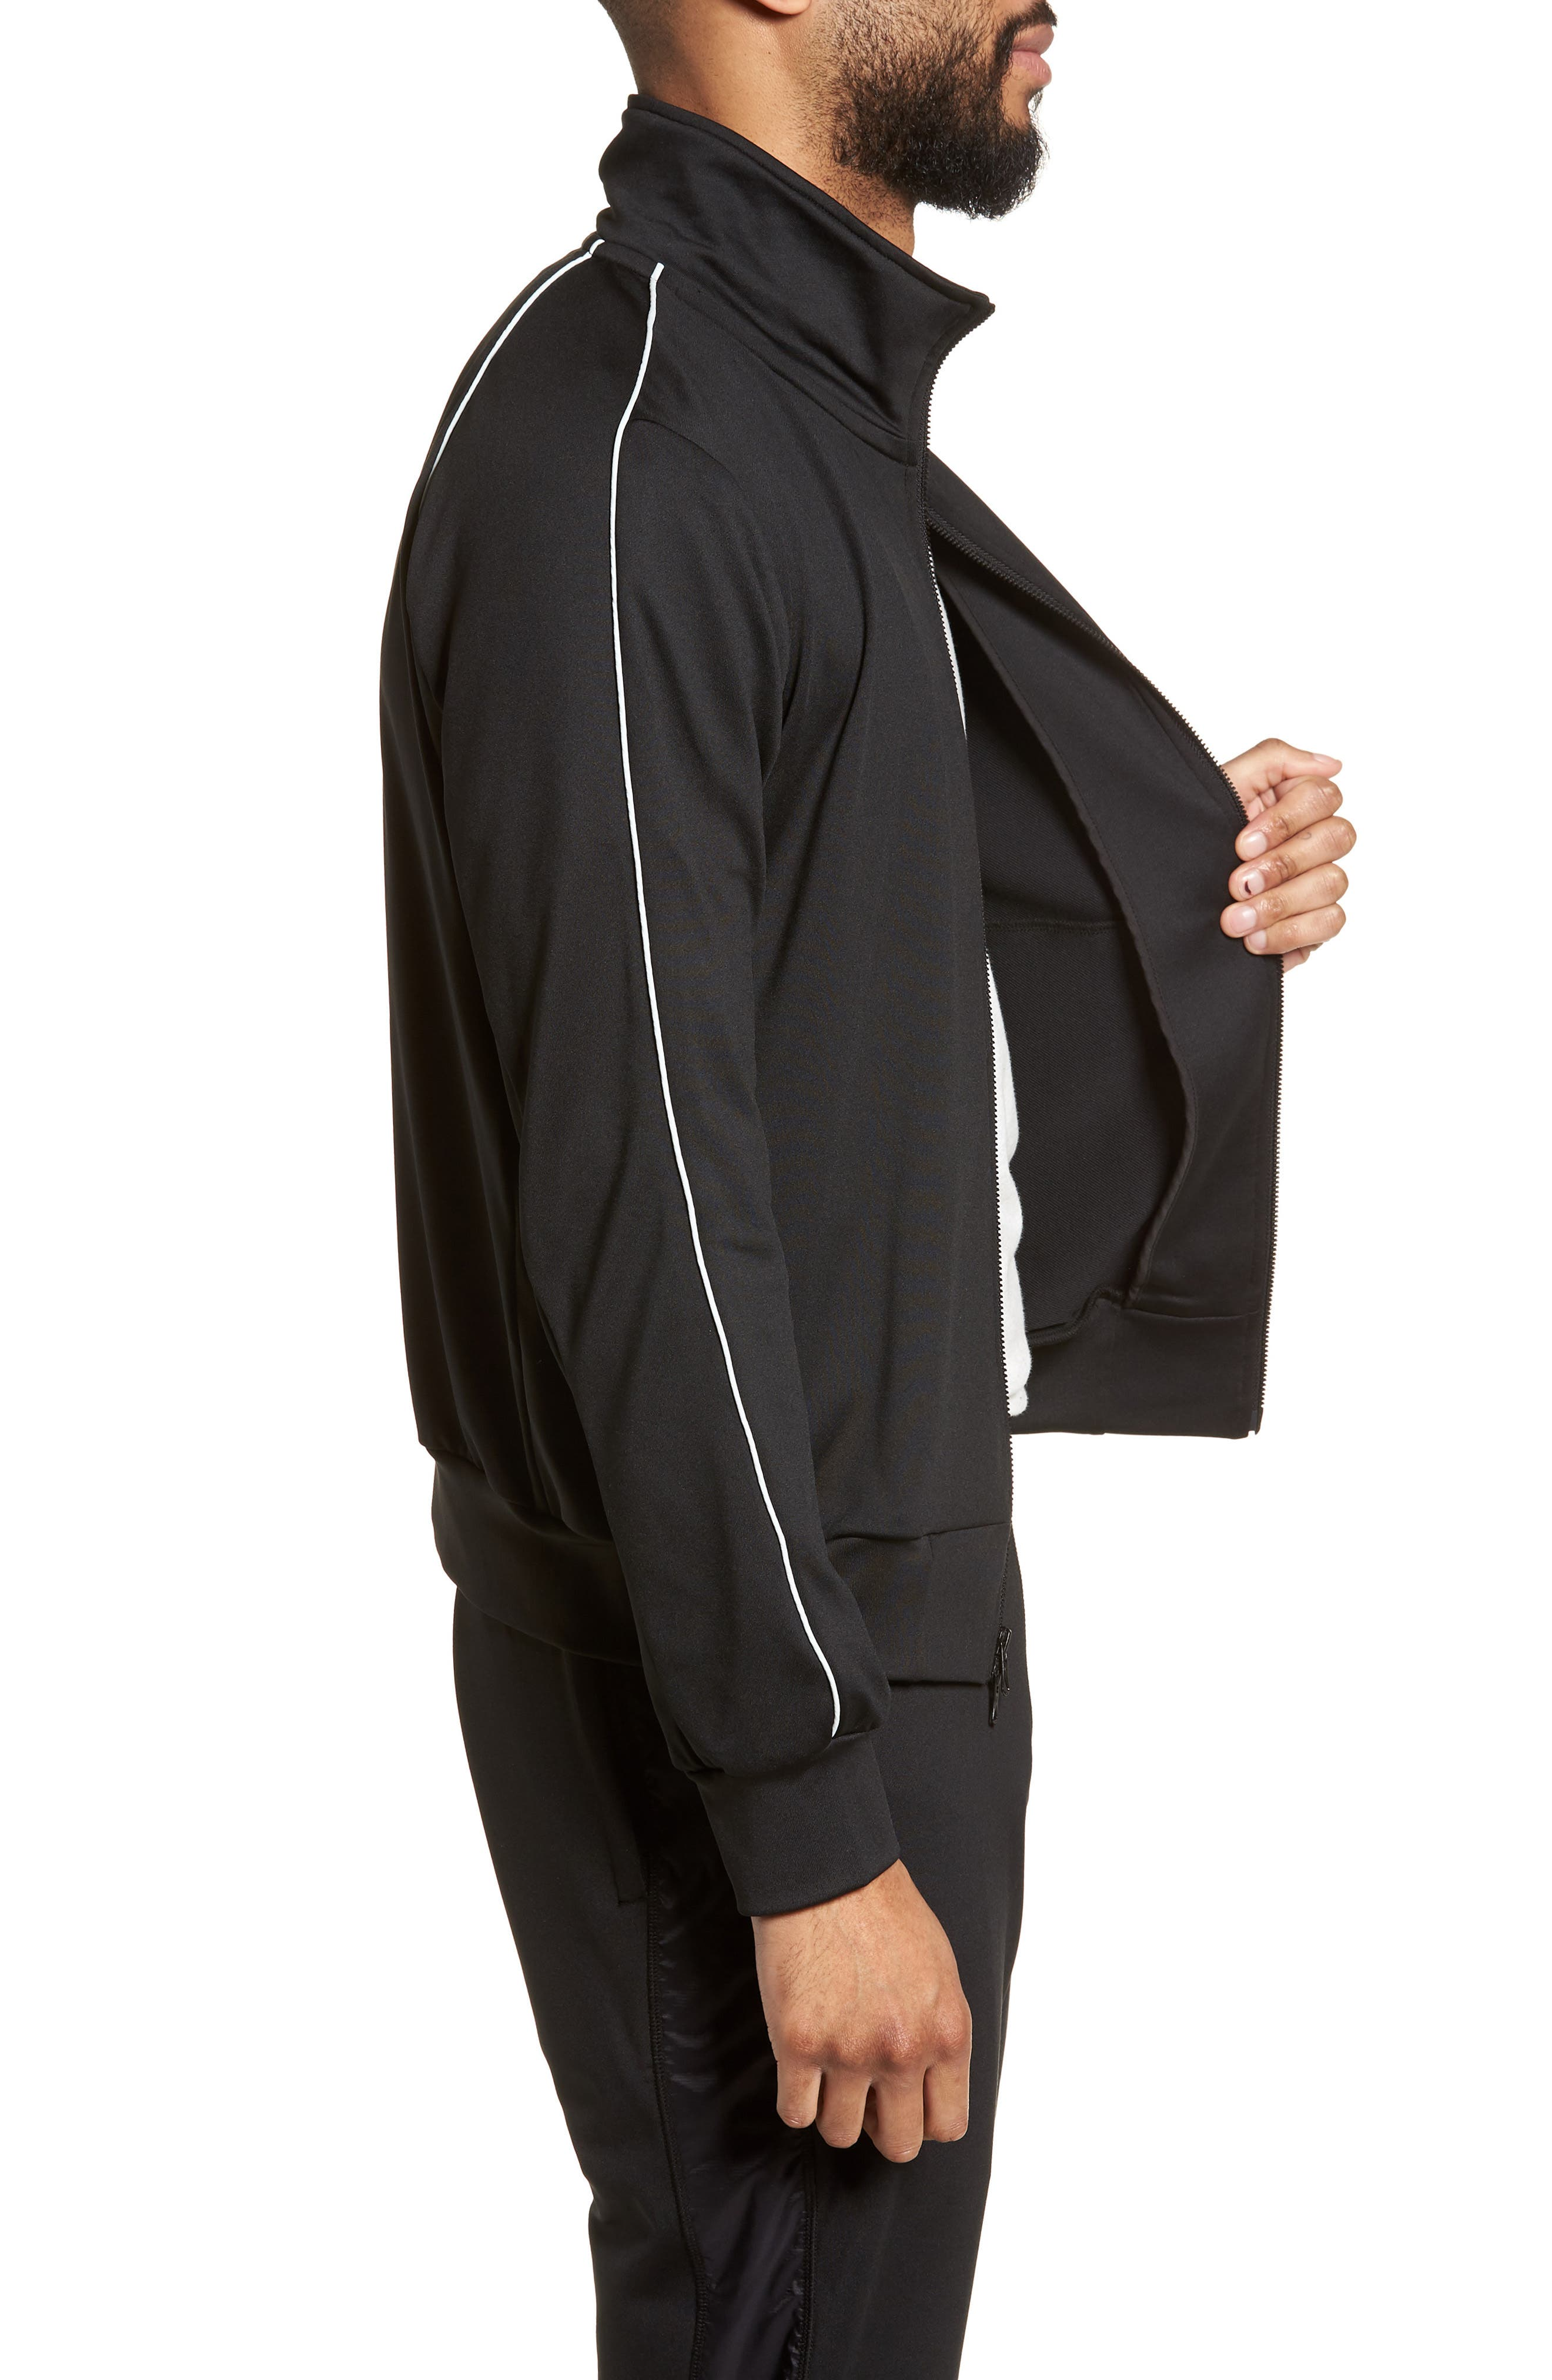 CoolMax<sup>®</sup> Track Jacket,                             Alternate thumbnail 3, color,                             Black